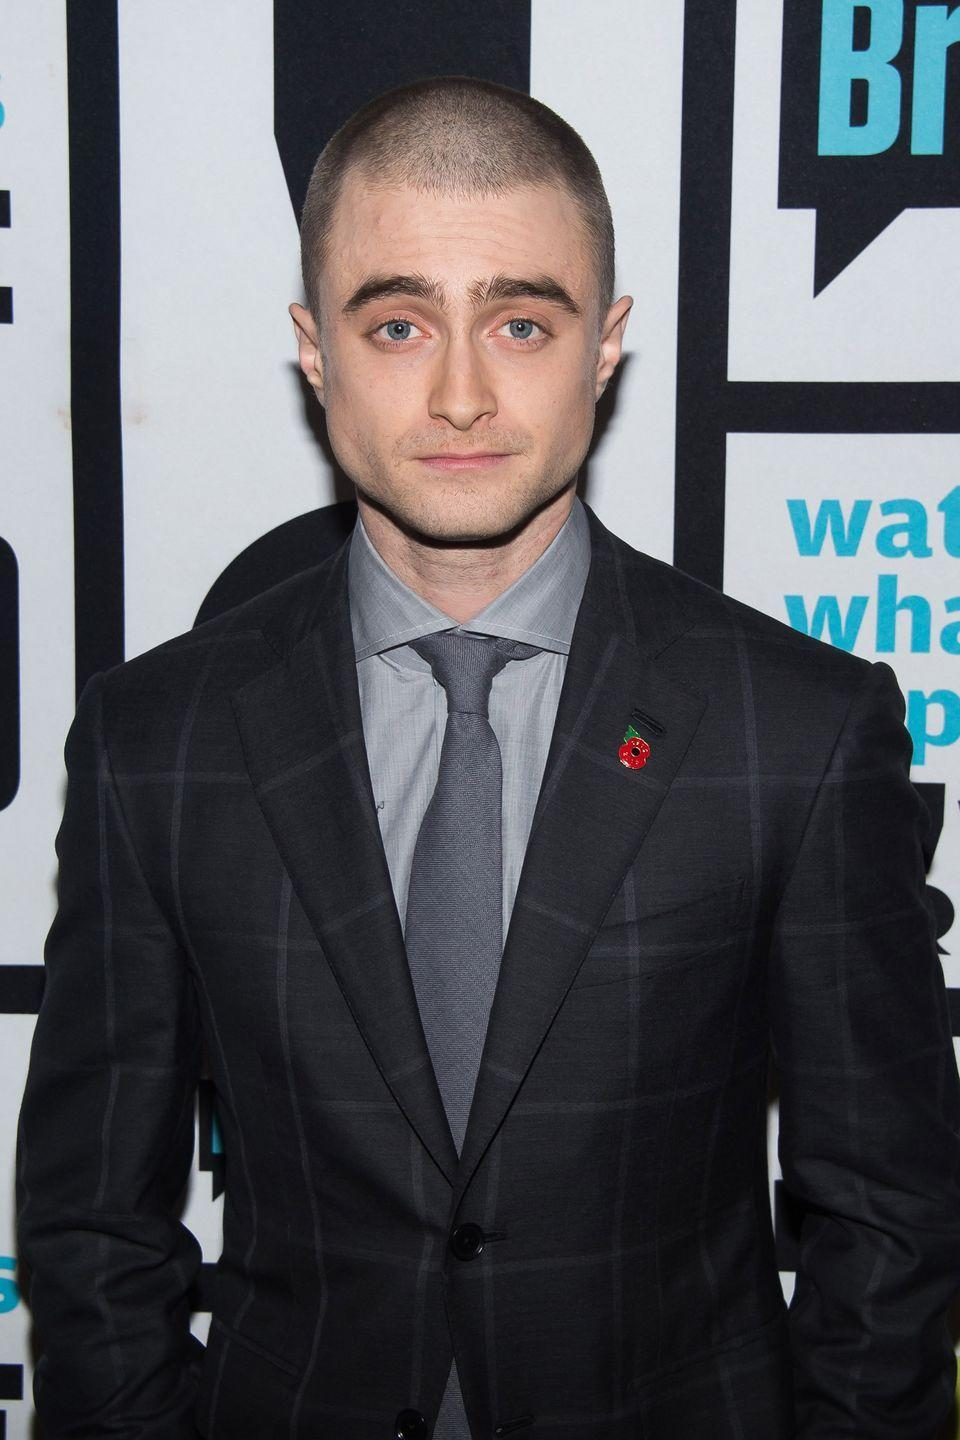 <p>Daniel Radcliffe starred as an FBI agent who goes undercover with a shaved head in the film <em>Imperium</em>. Being the dutiful actor he is, Radcliffe really did buzz his hair in the scene for the movie. </p>